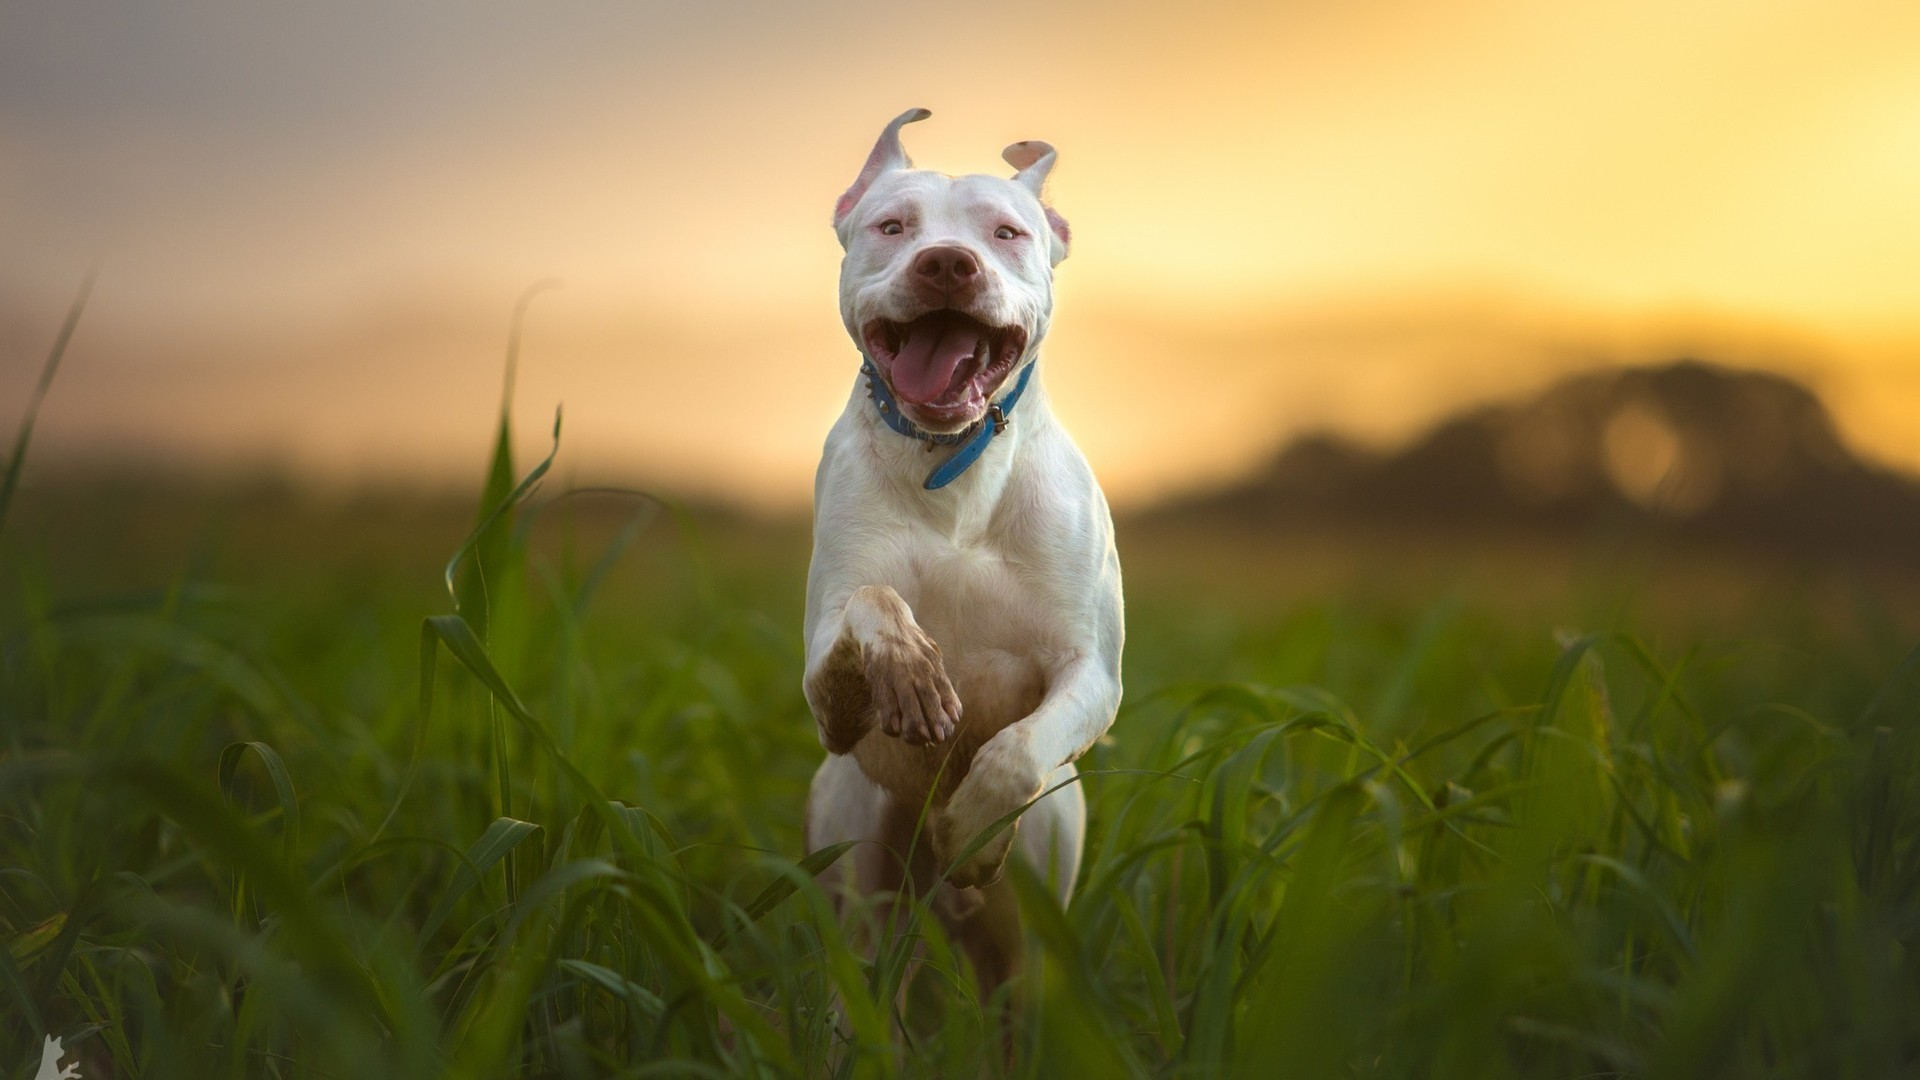 1920x1080 Pitbull Dog Breed Running (Laptop Full HD 1080P)